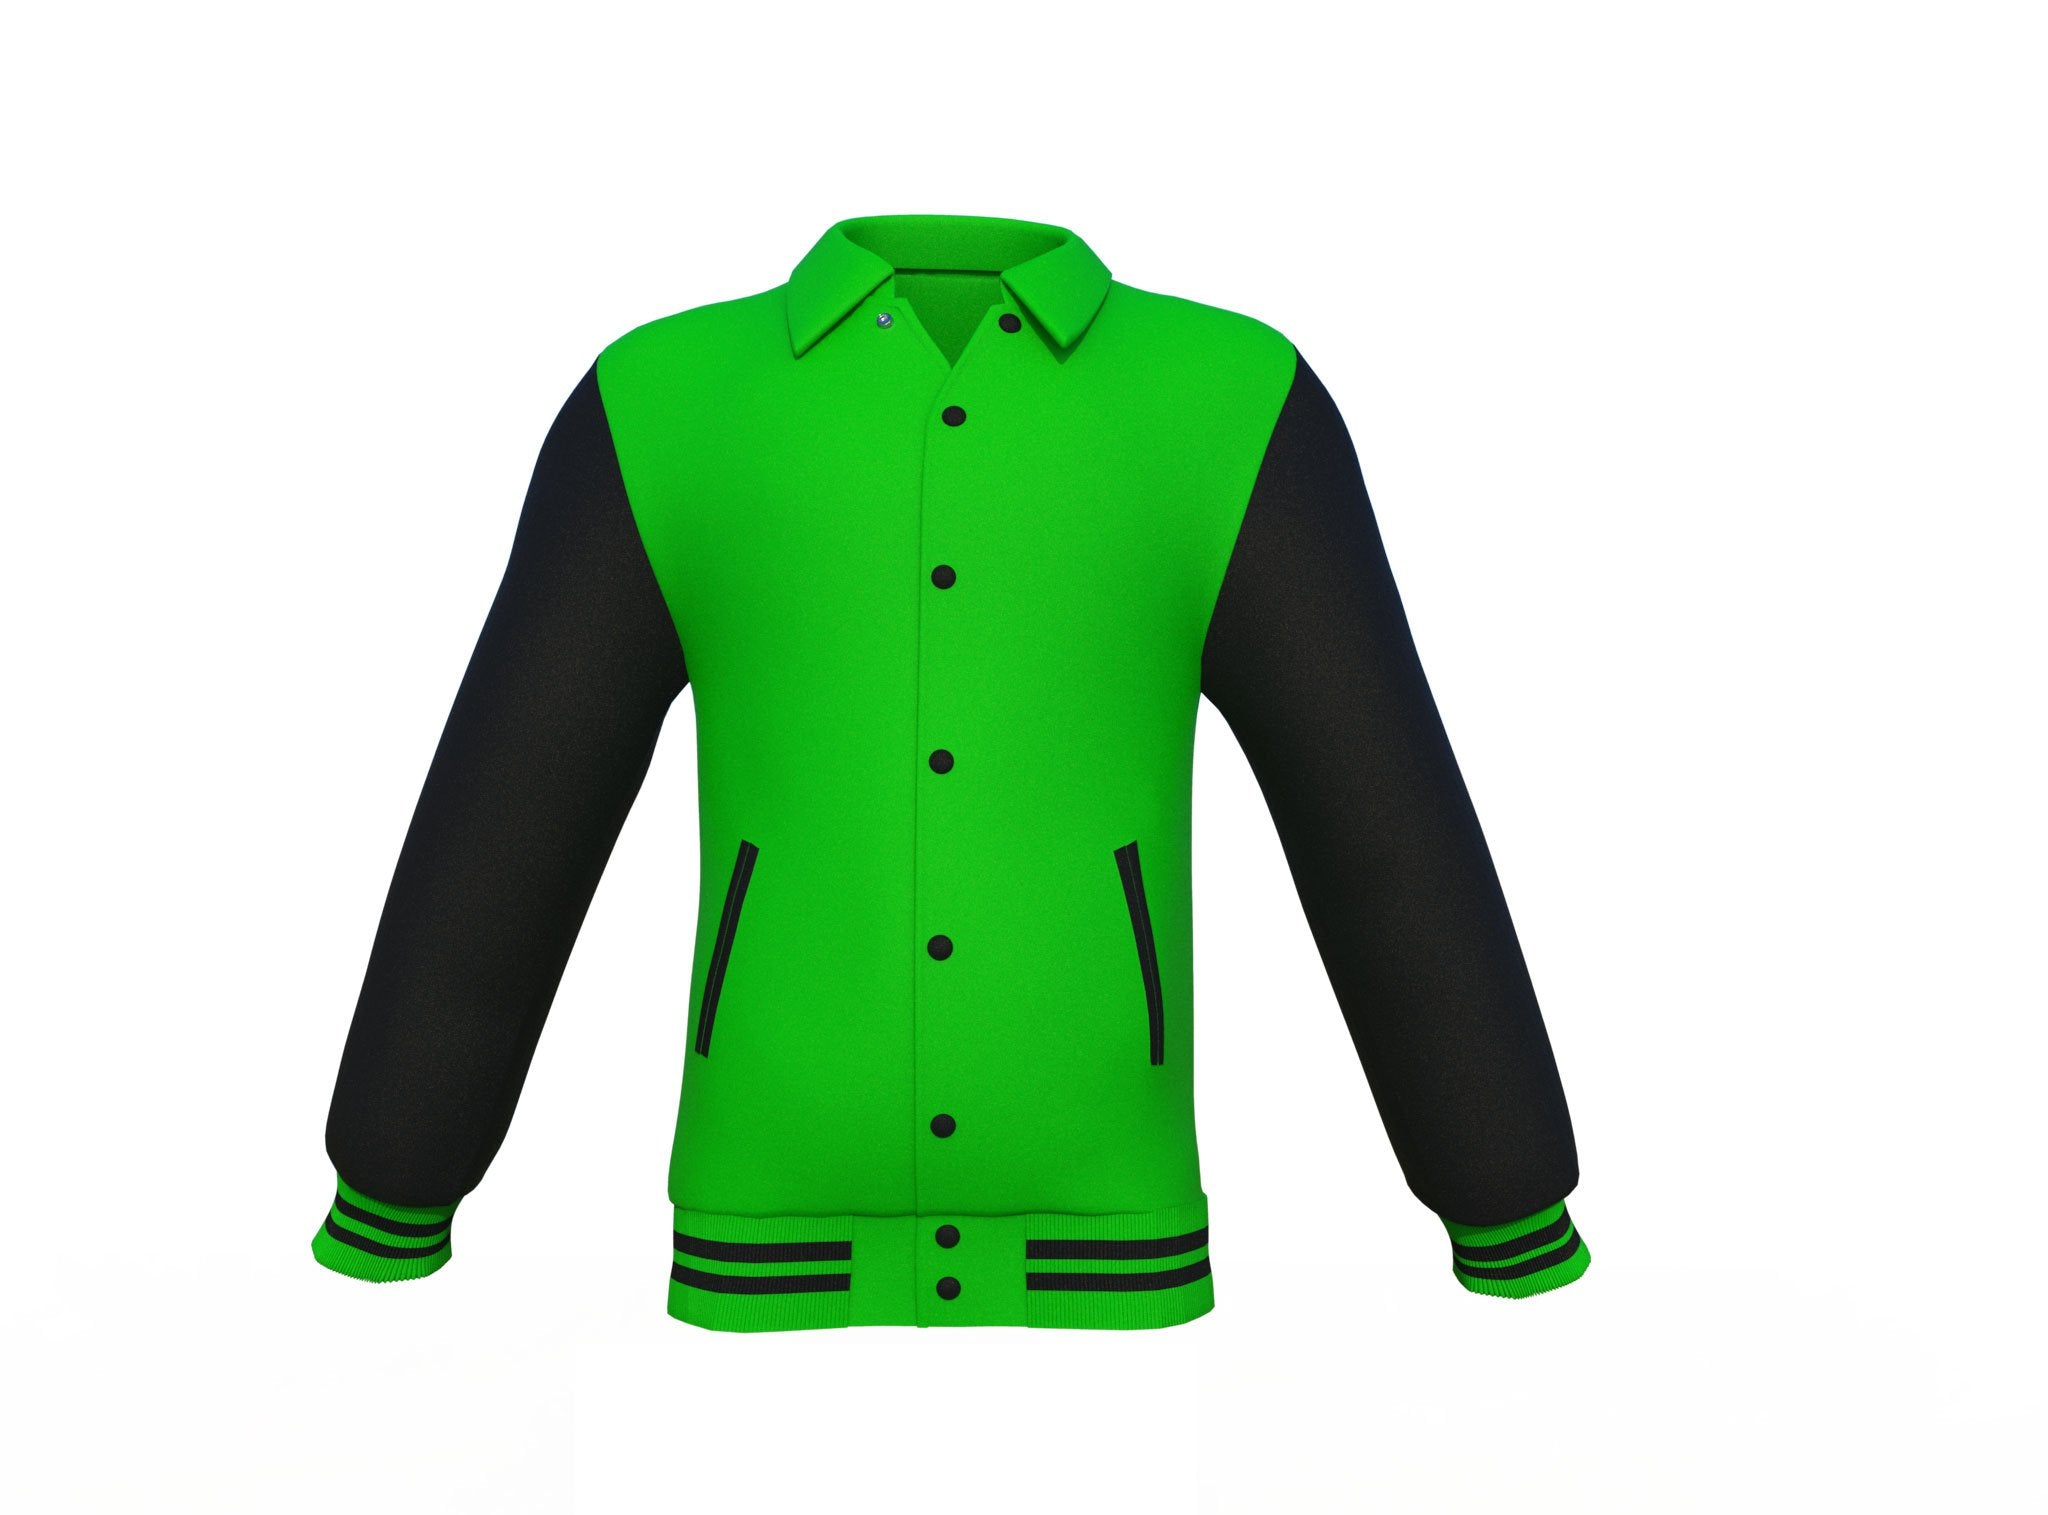 Light Green Varsity Letterman Jacket with Black Sleeves